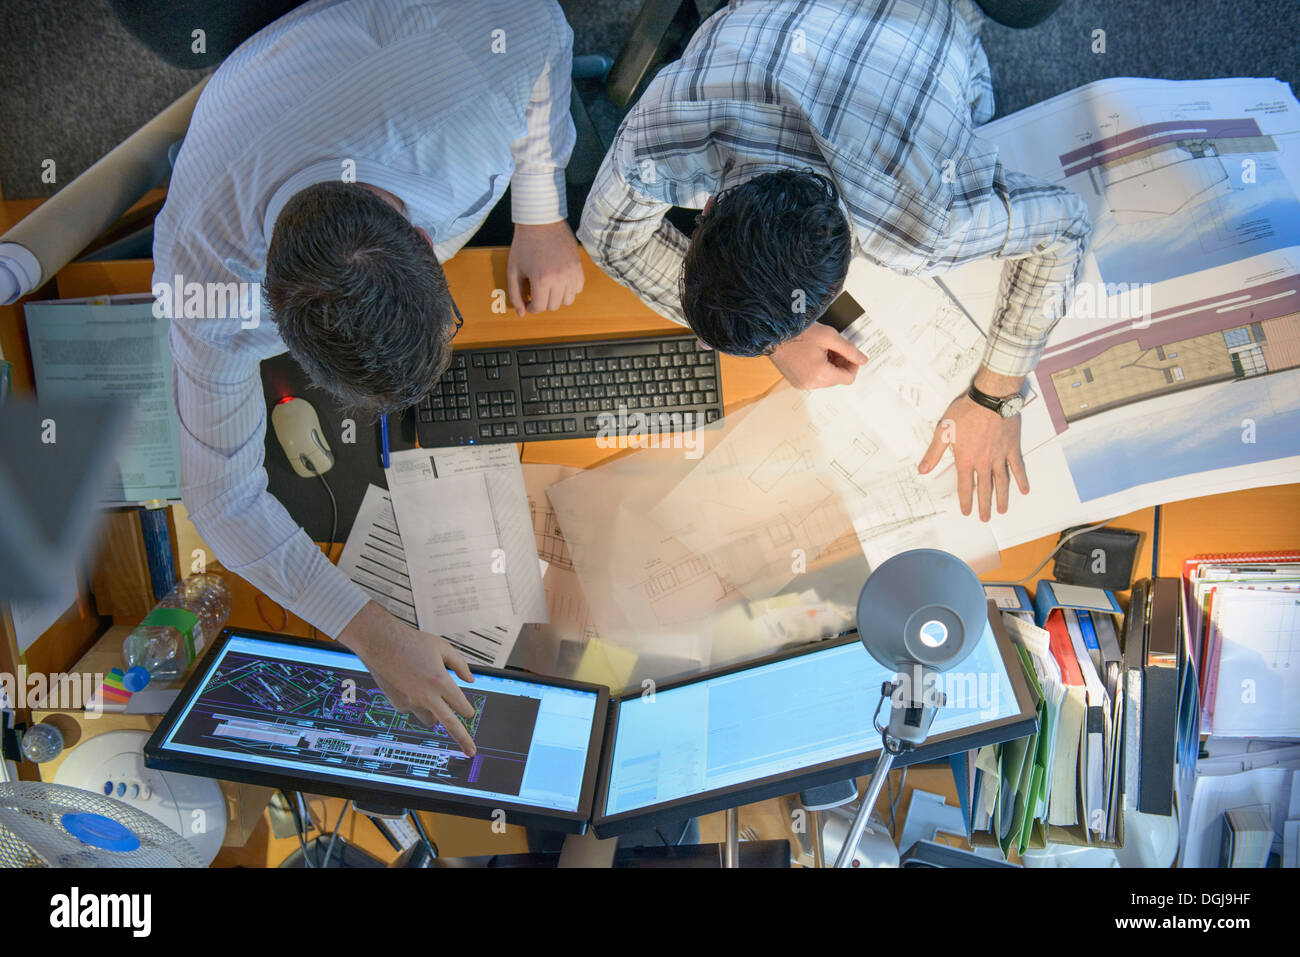 Architects working together on plans and screens at desk - Stock Image